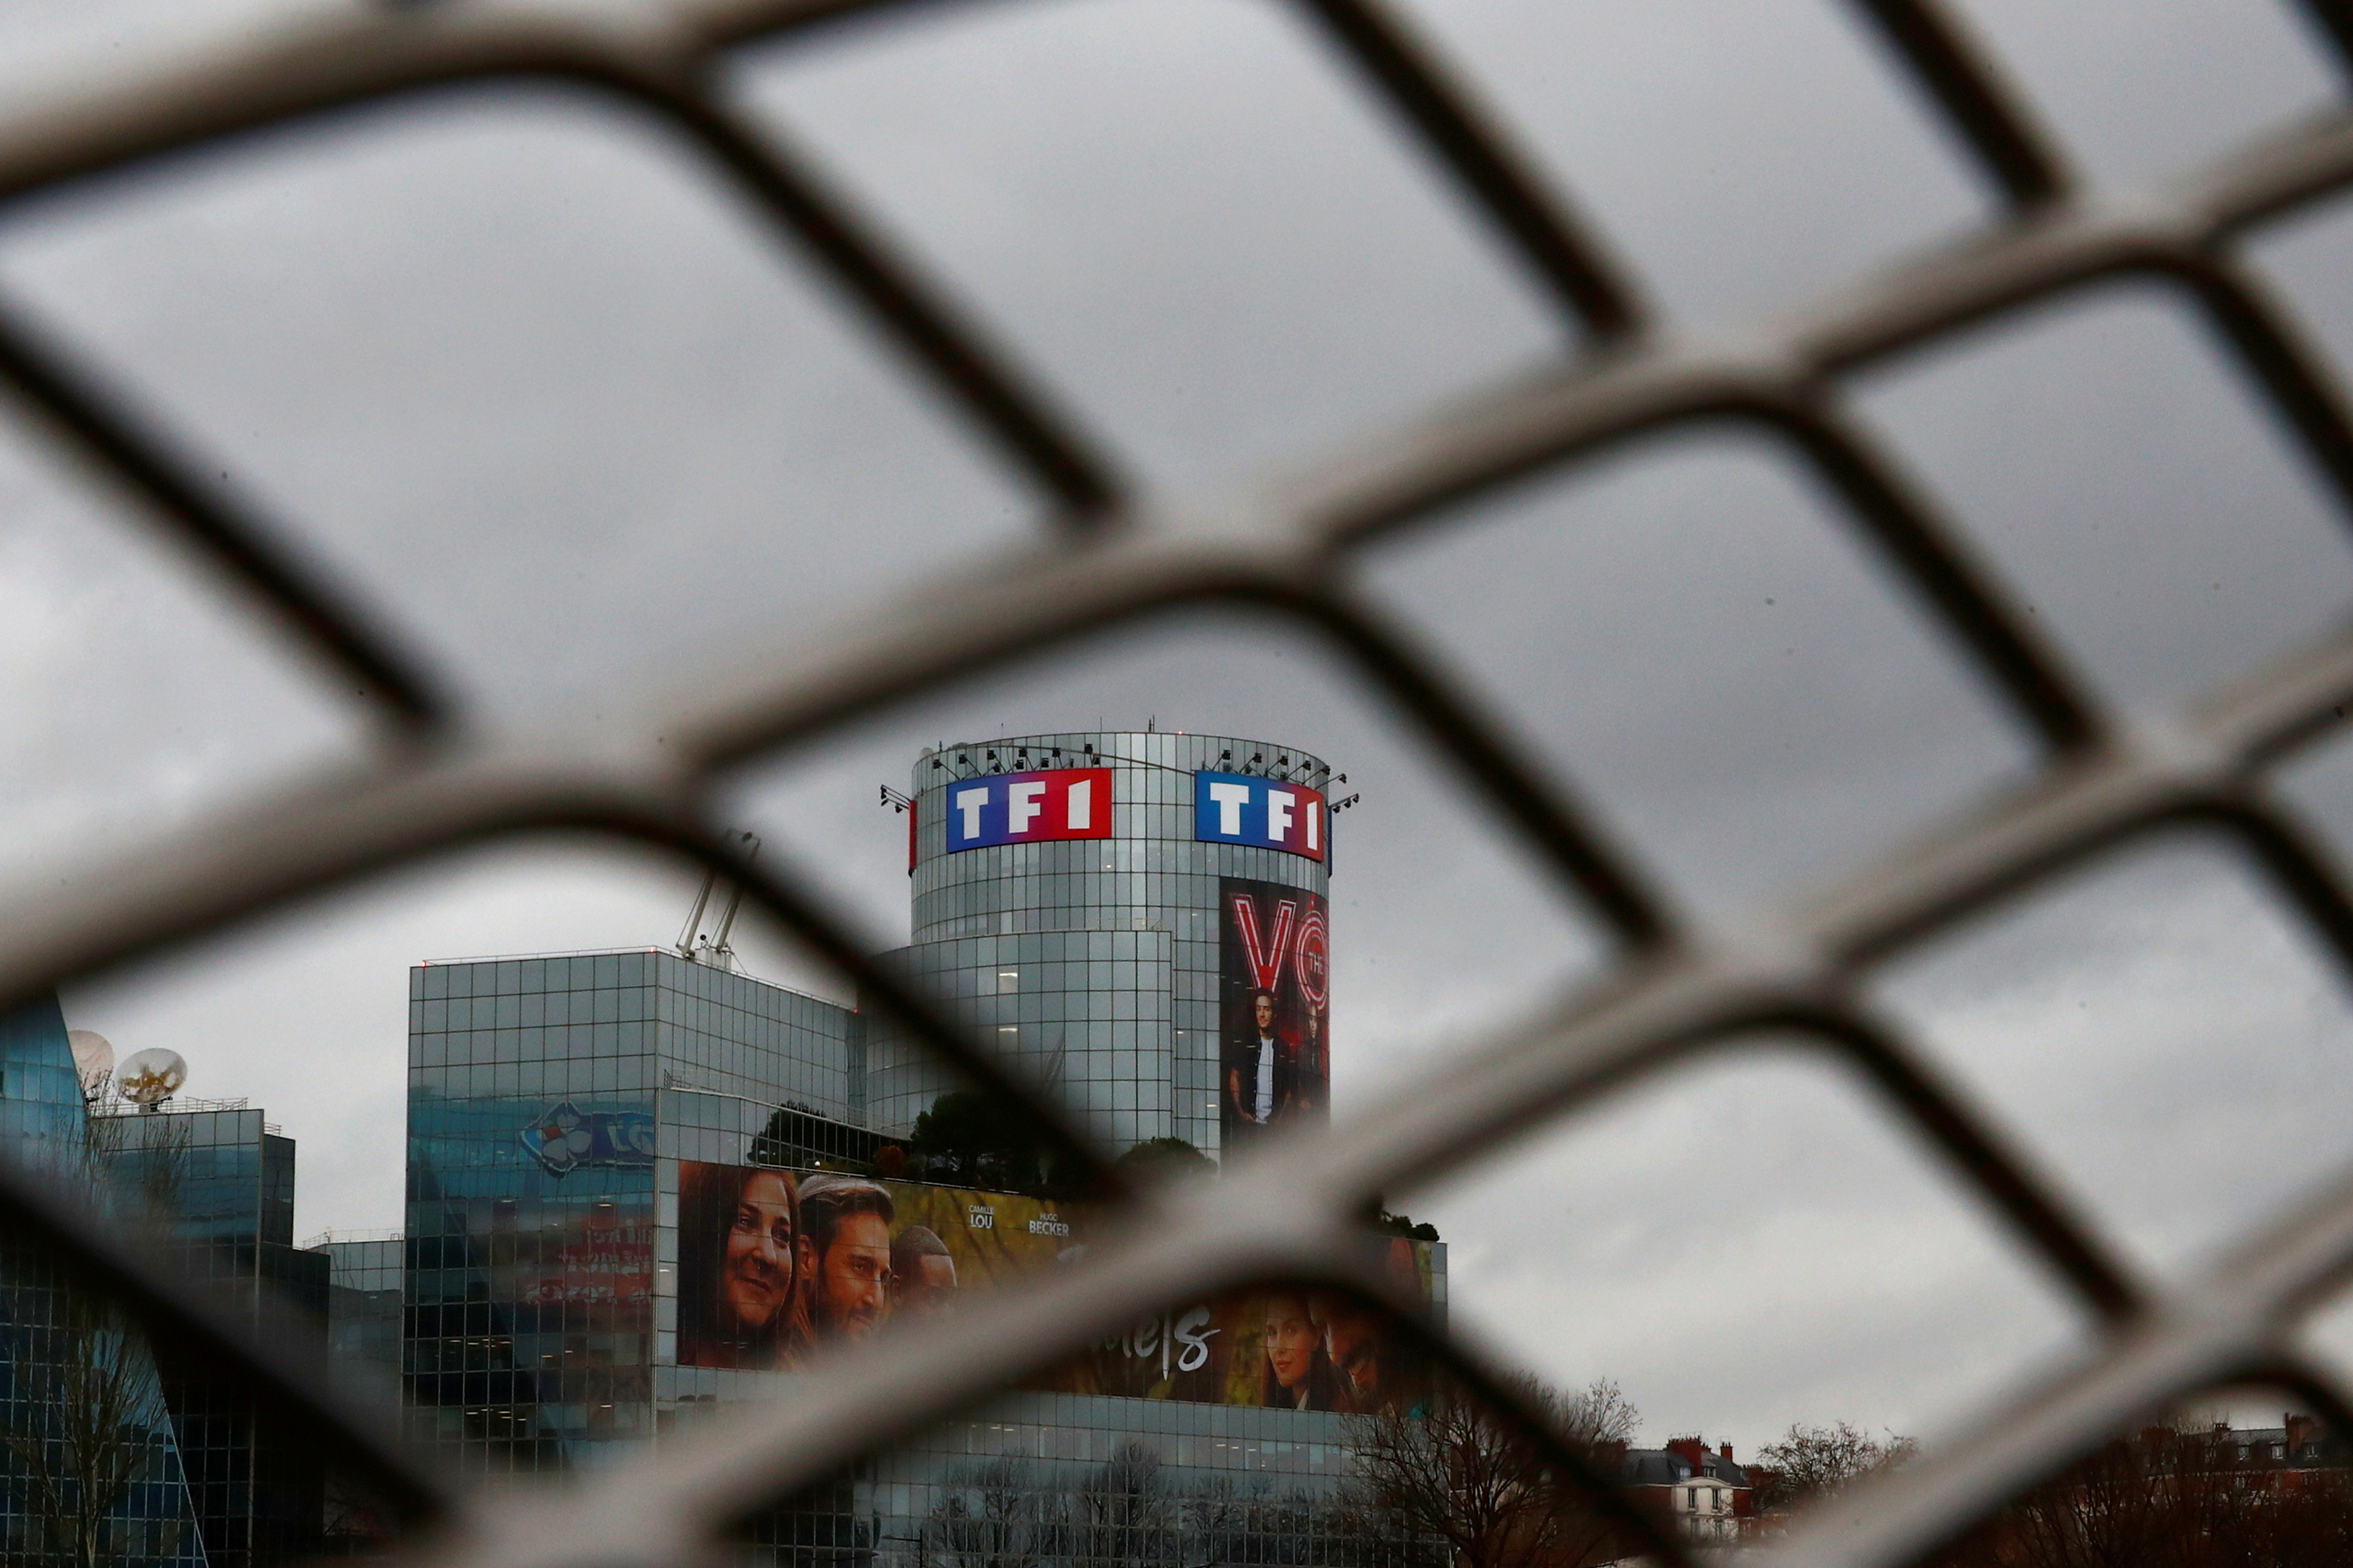 A view shows French television networks TF1 headquarters in Boulogne-Billancourt, near Paris, France, February 18, 2021. REUTERS/Gonzalo Fuentes/File Photo